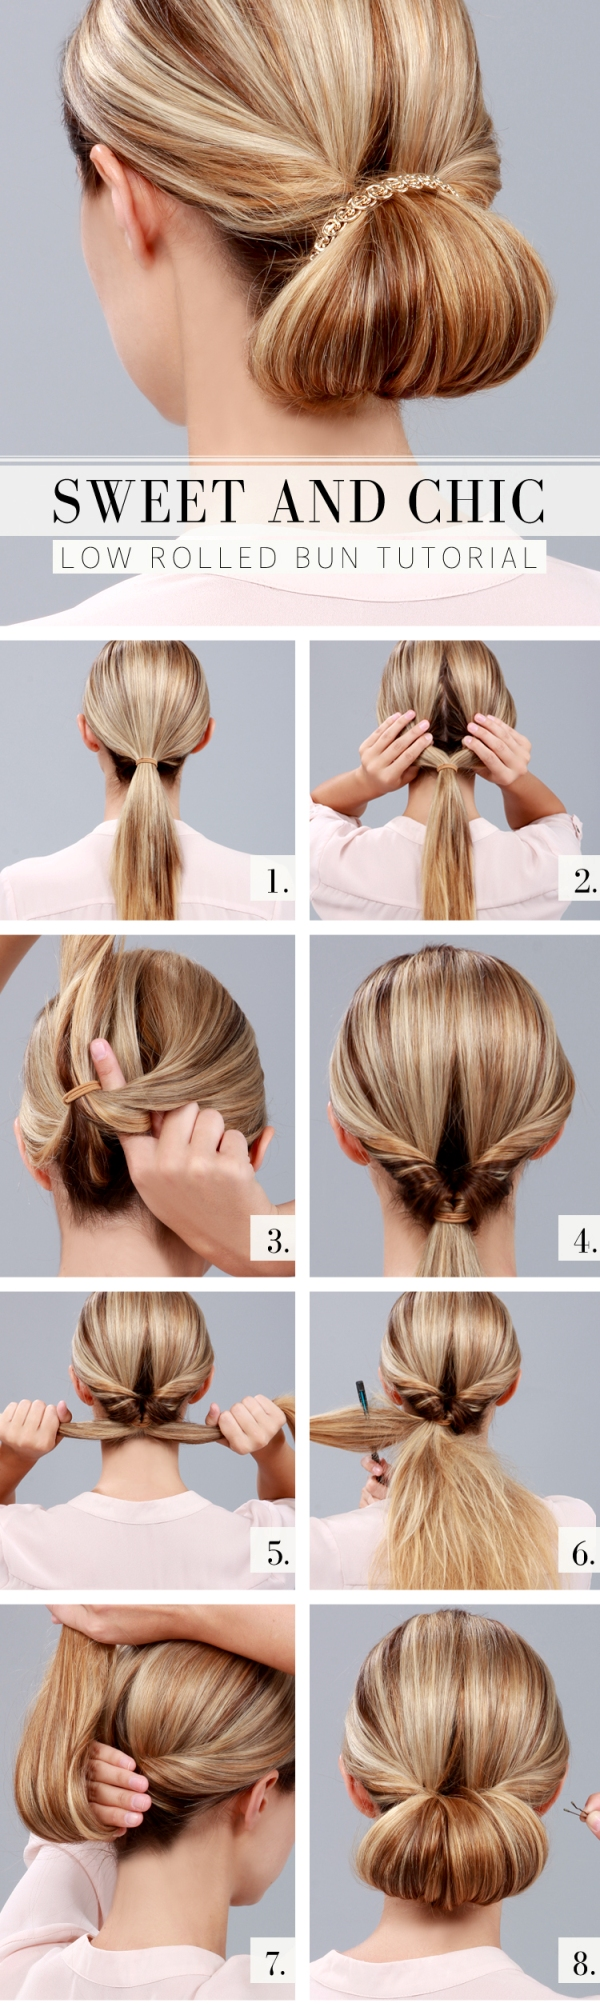 hairstyles_new_year24